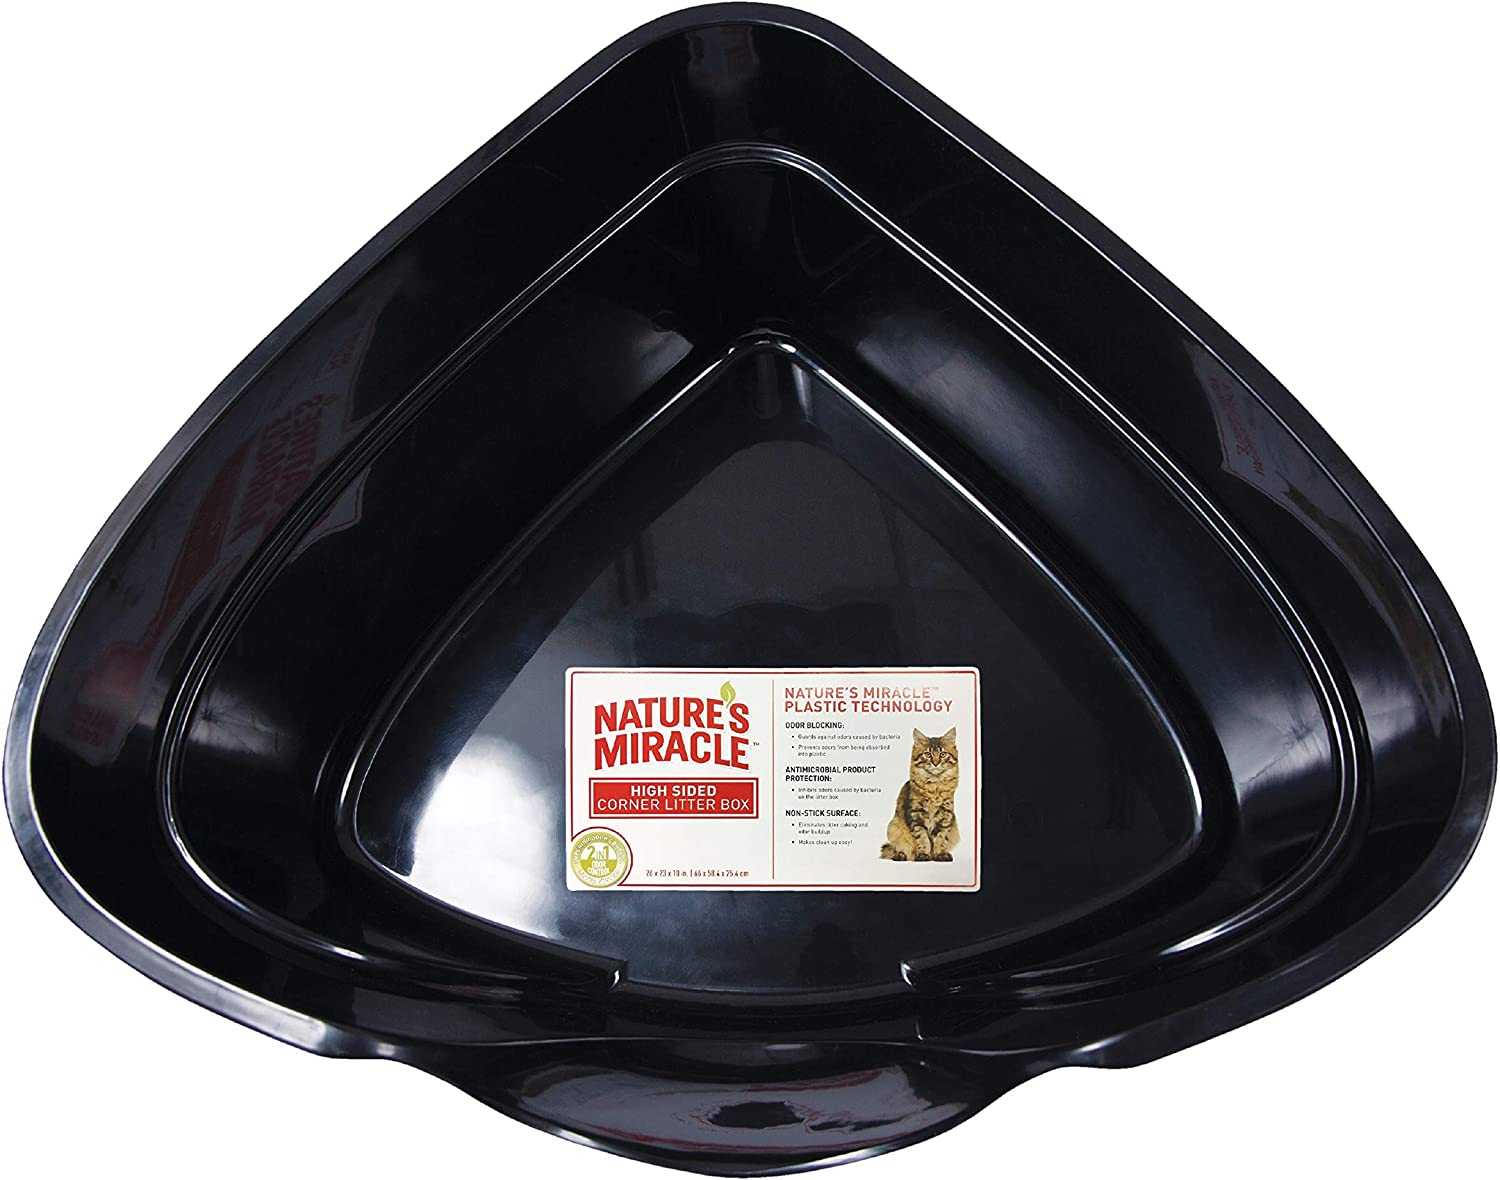 P-5913 Natures Miracle Advanced High Sided Corner Litter Box